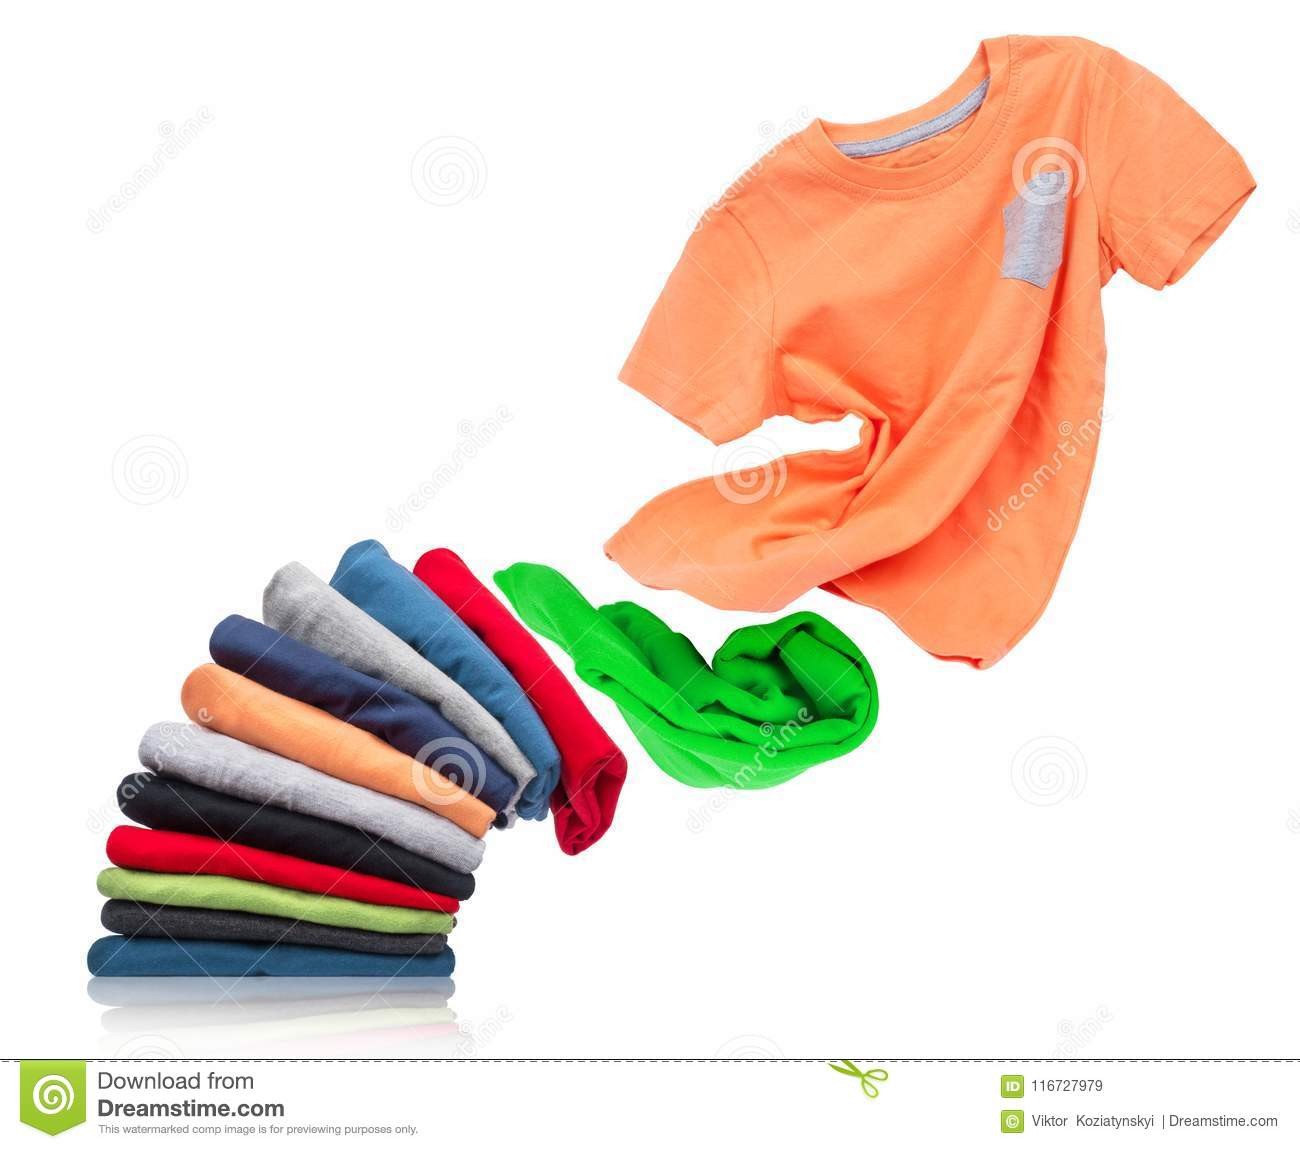 T-shirt flies out of a pile with clothes on white background